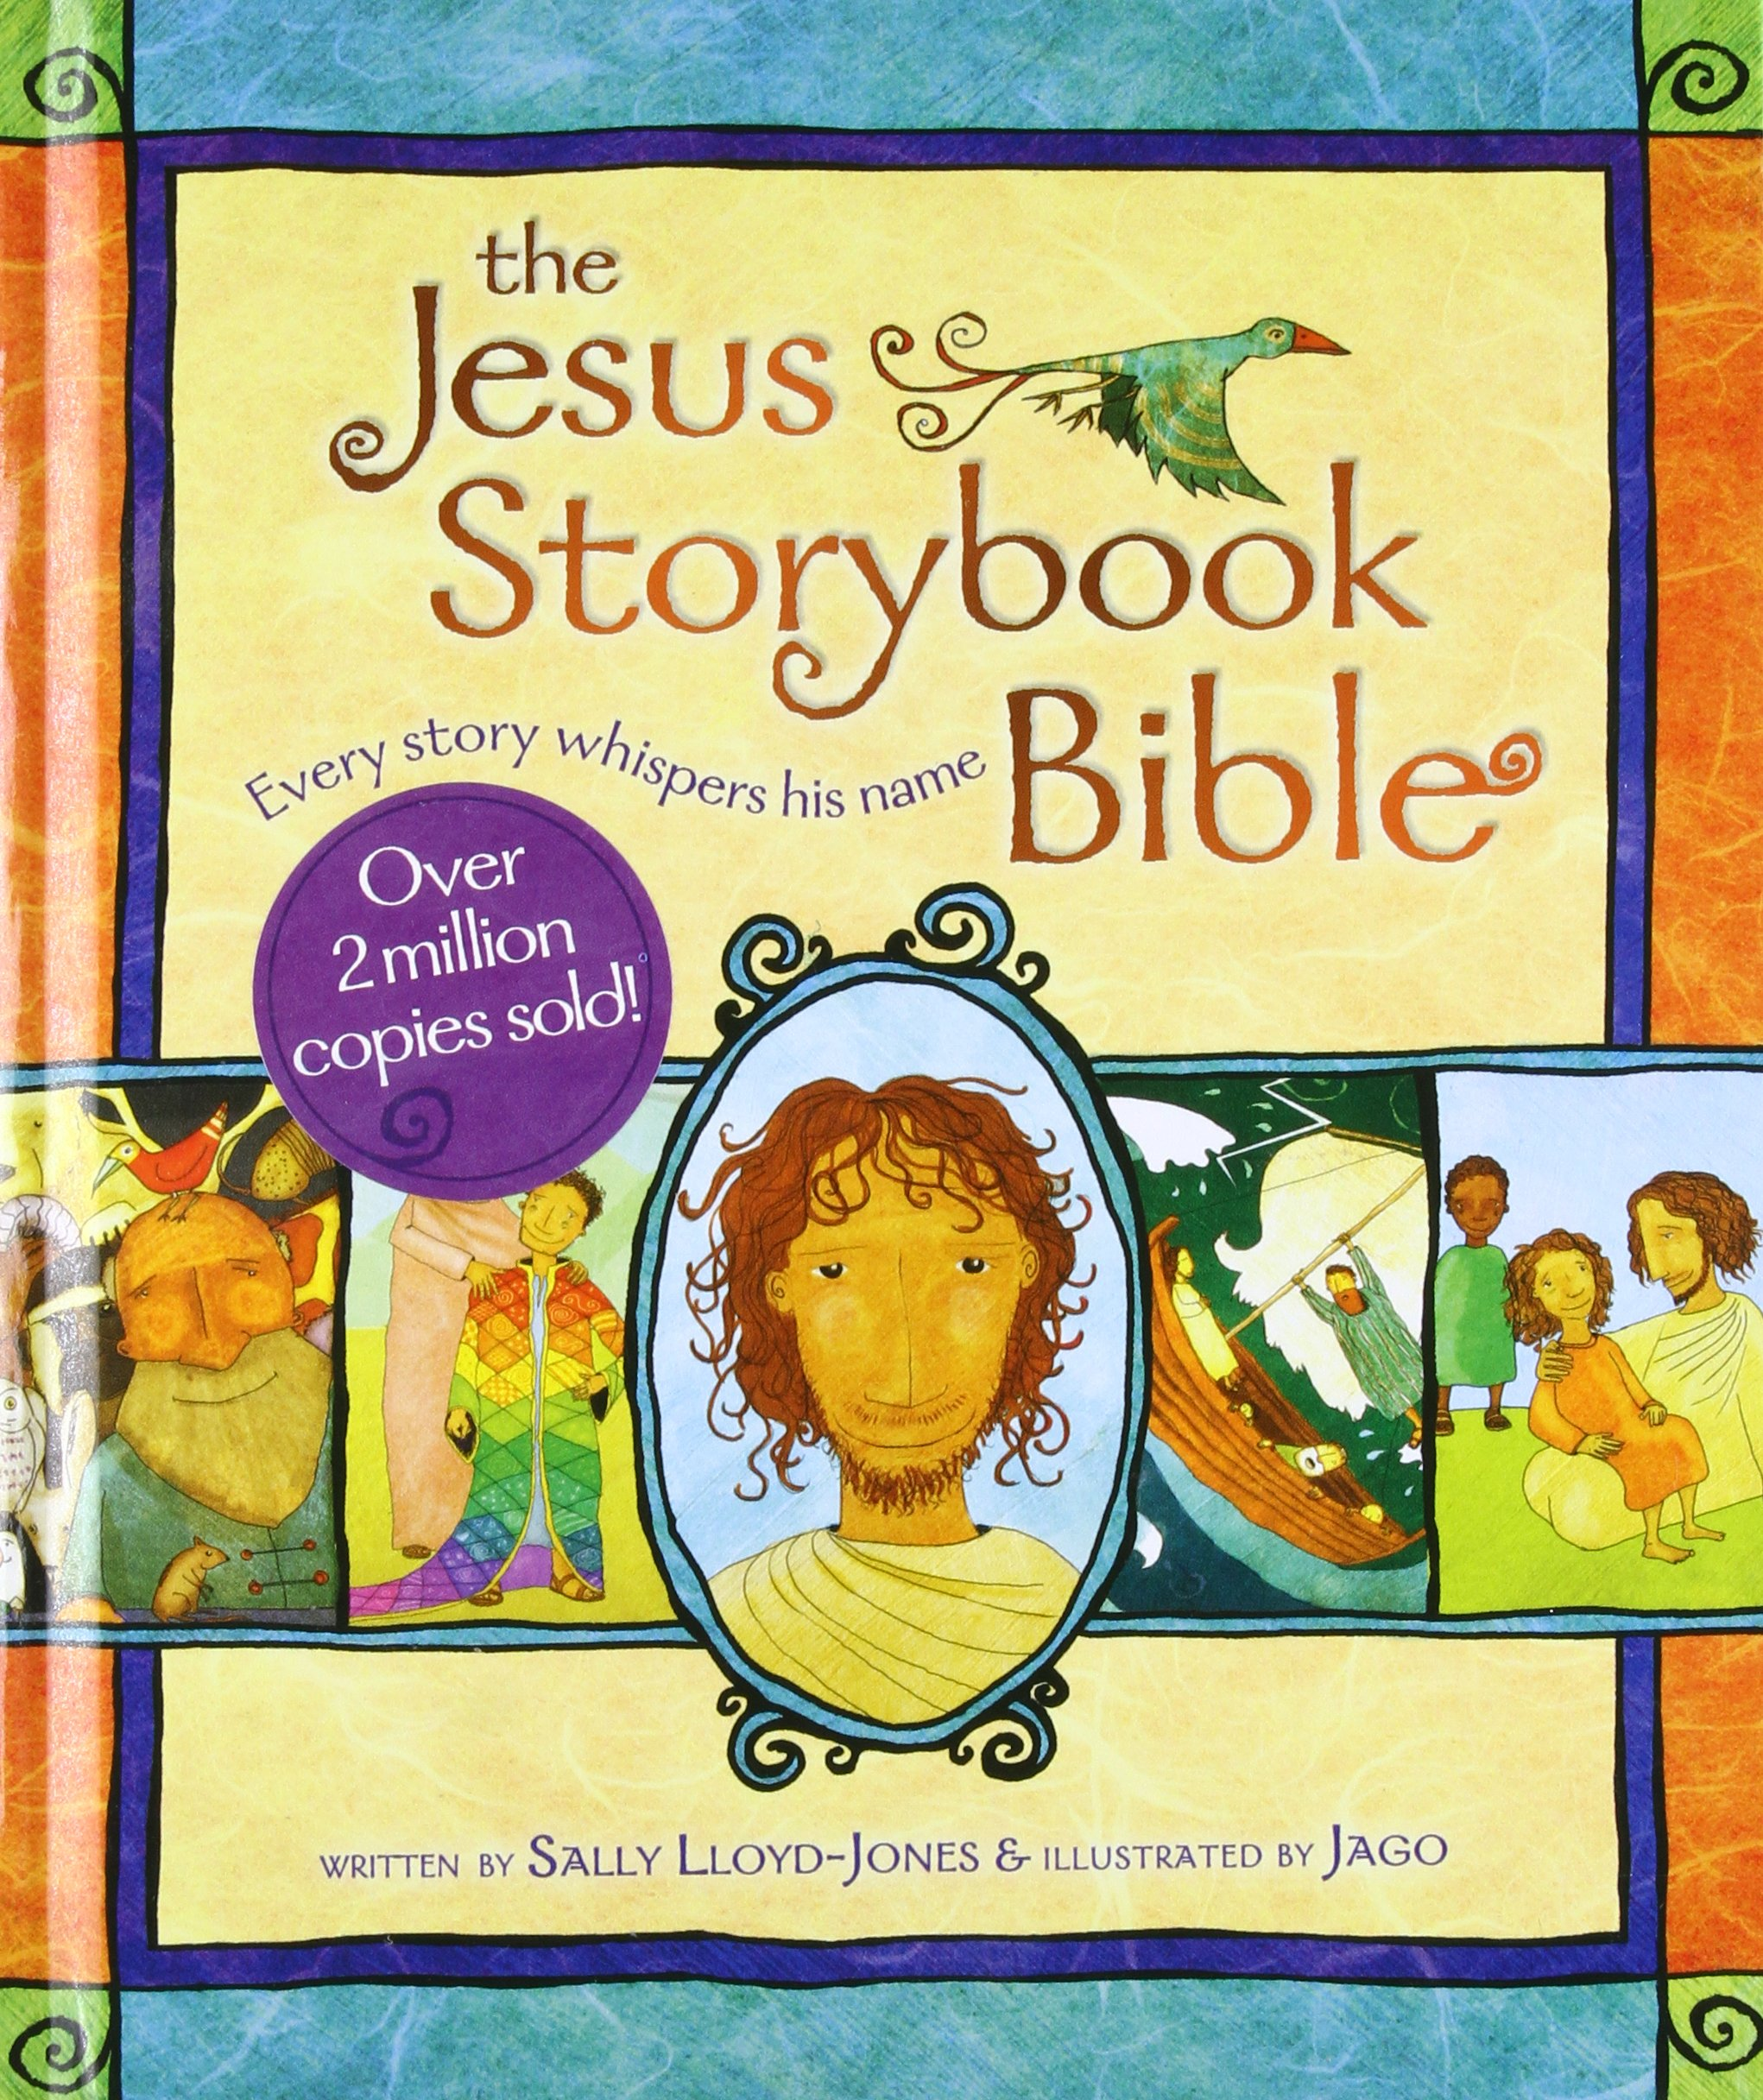 Amazon Education Christian Books Bibles Books Children